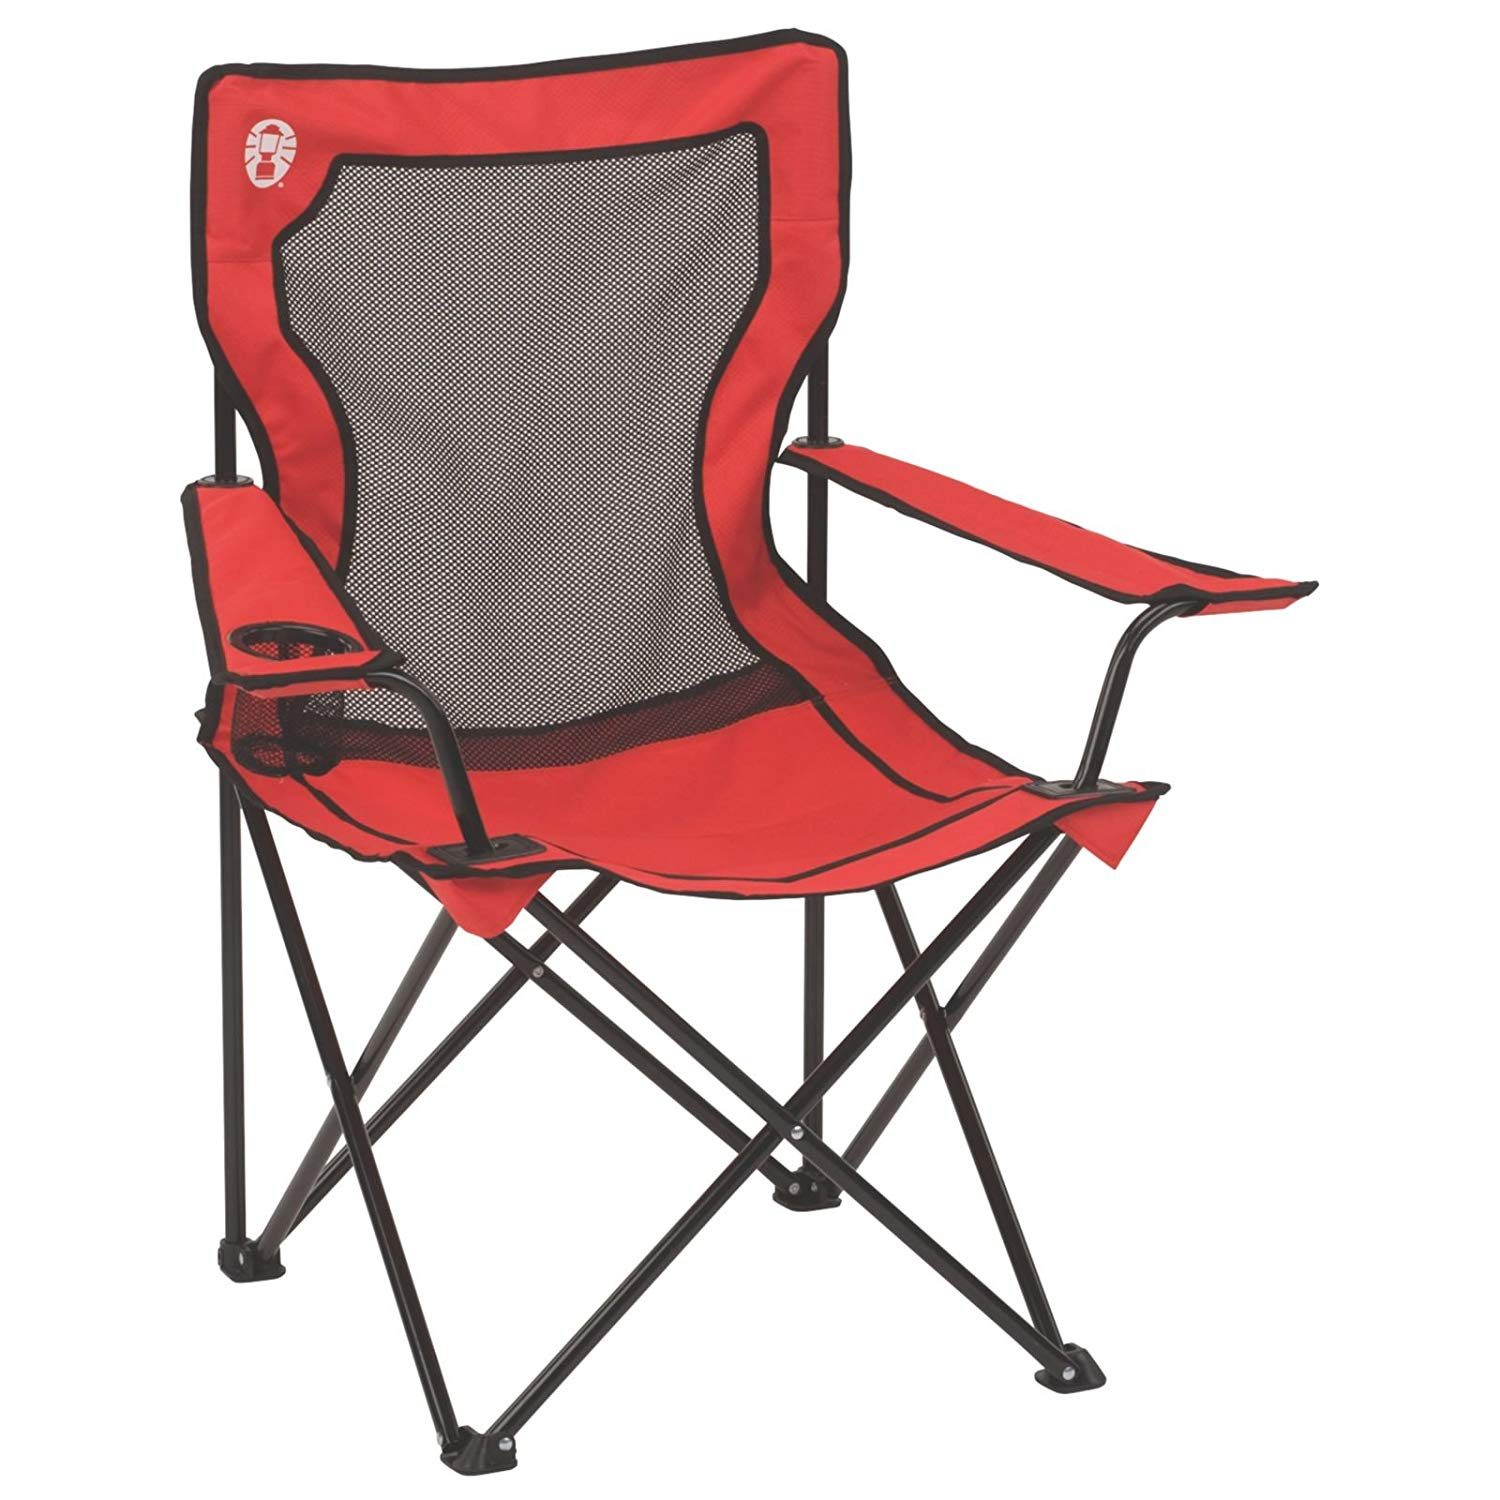 These foldable chairs and comfy and affordable (Photo via Amazon)